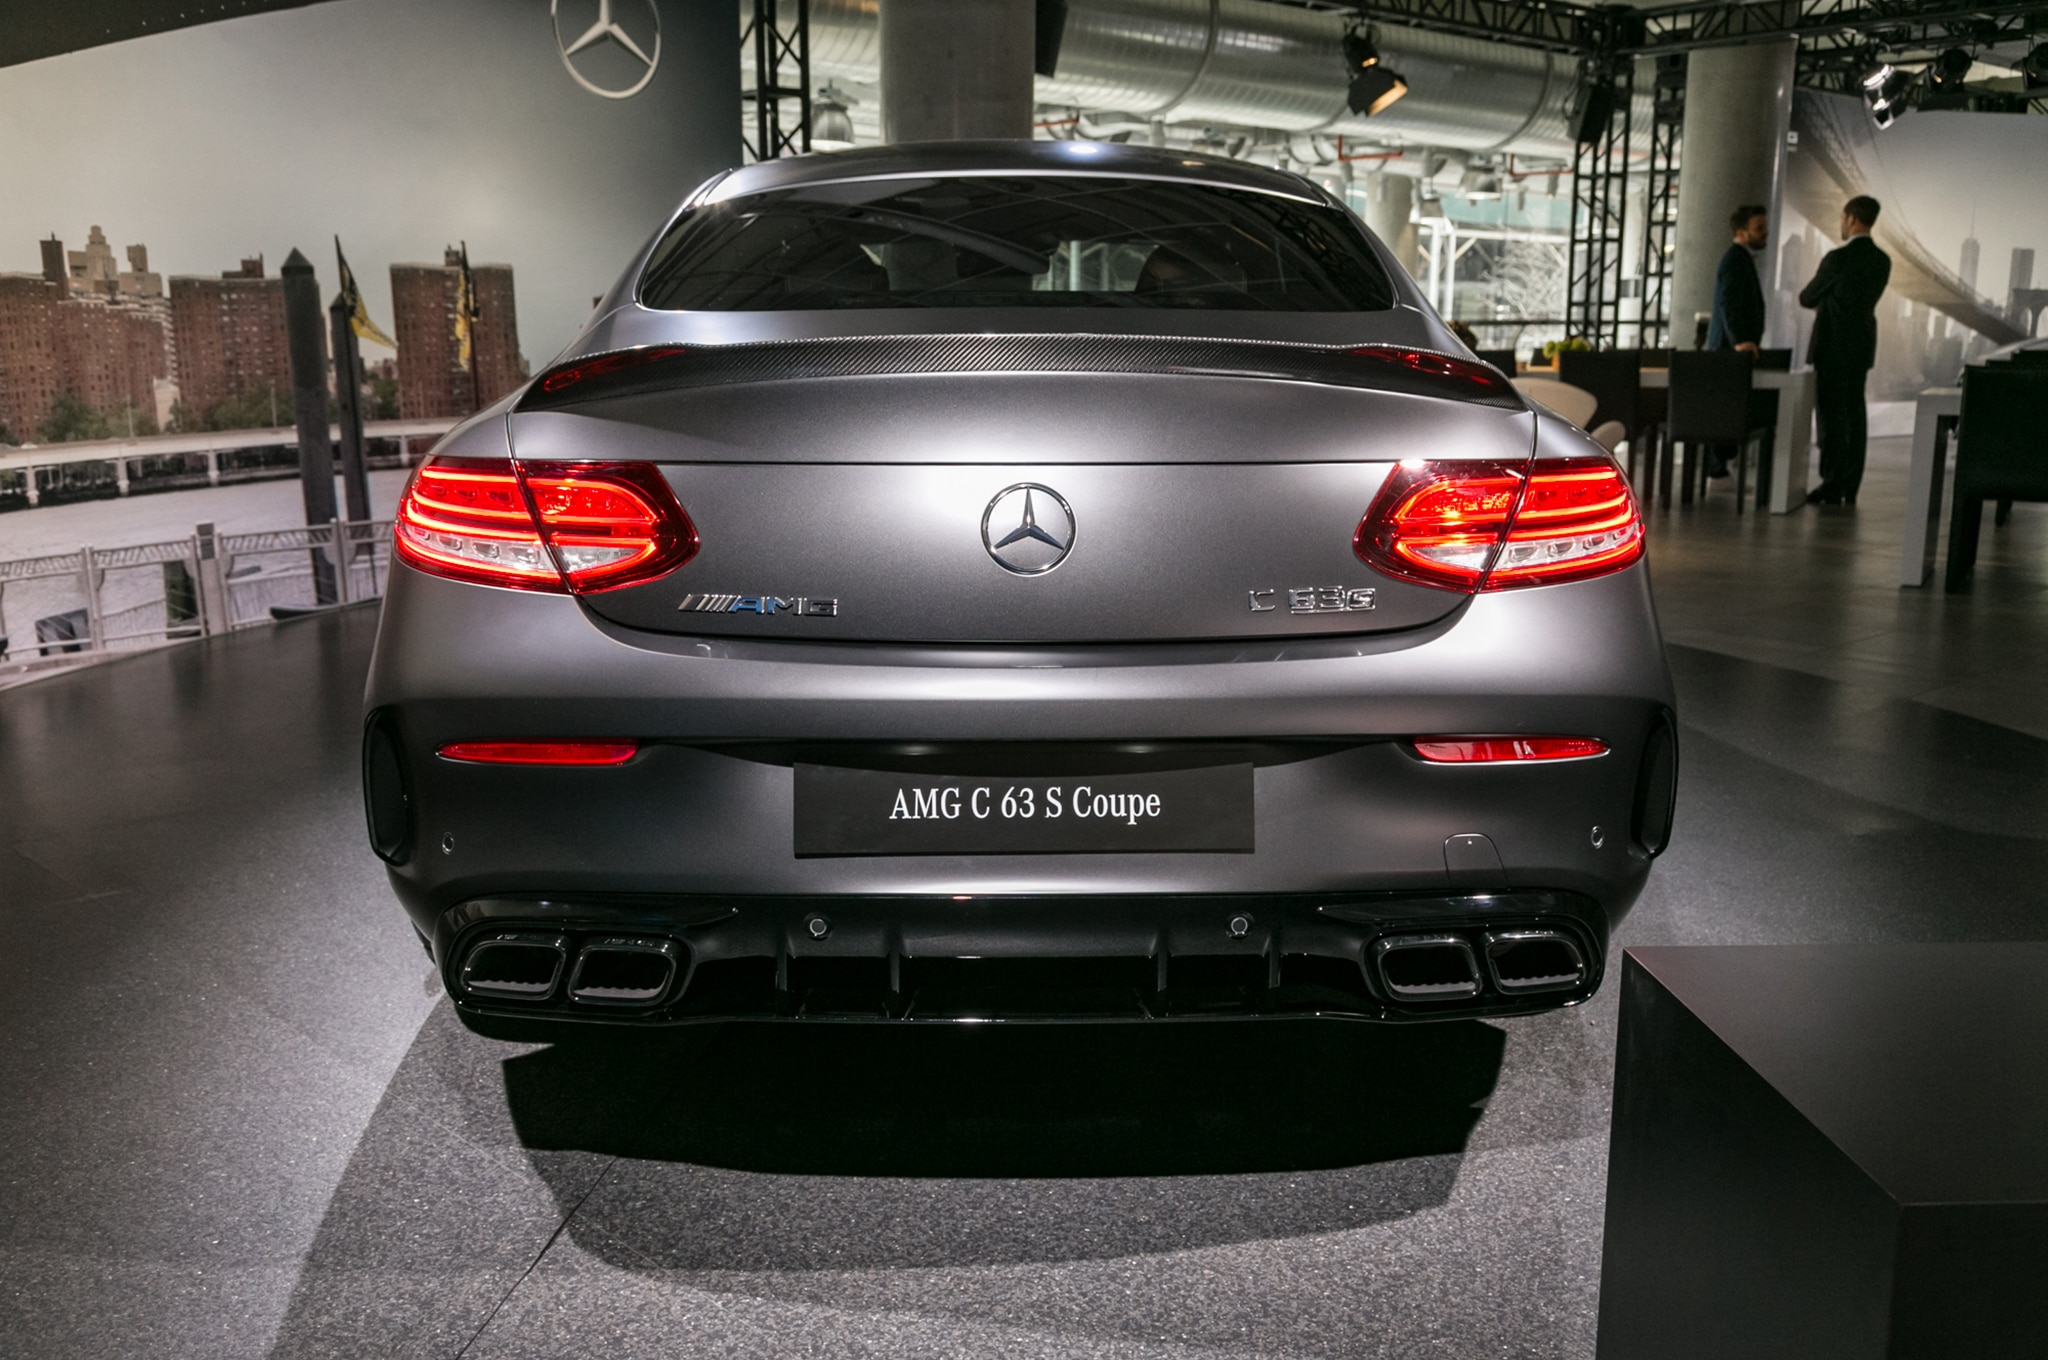 C63 Amg Coupe 2018 >> 2019 Mercedes-AMG C63 Family Arrives with Six Variants | Automobile Magazine